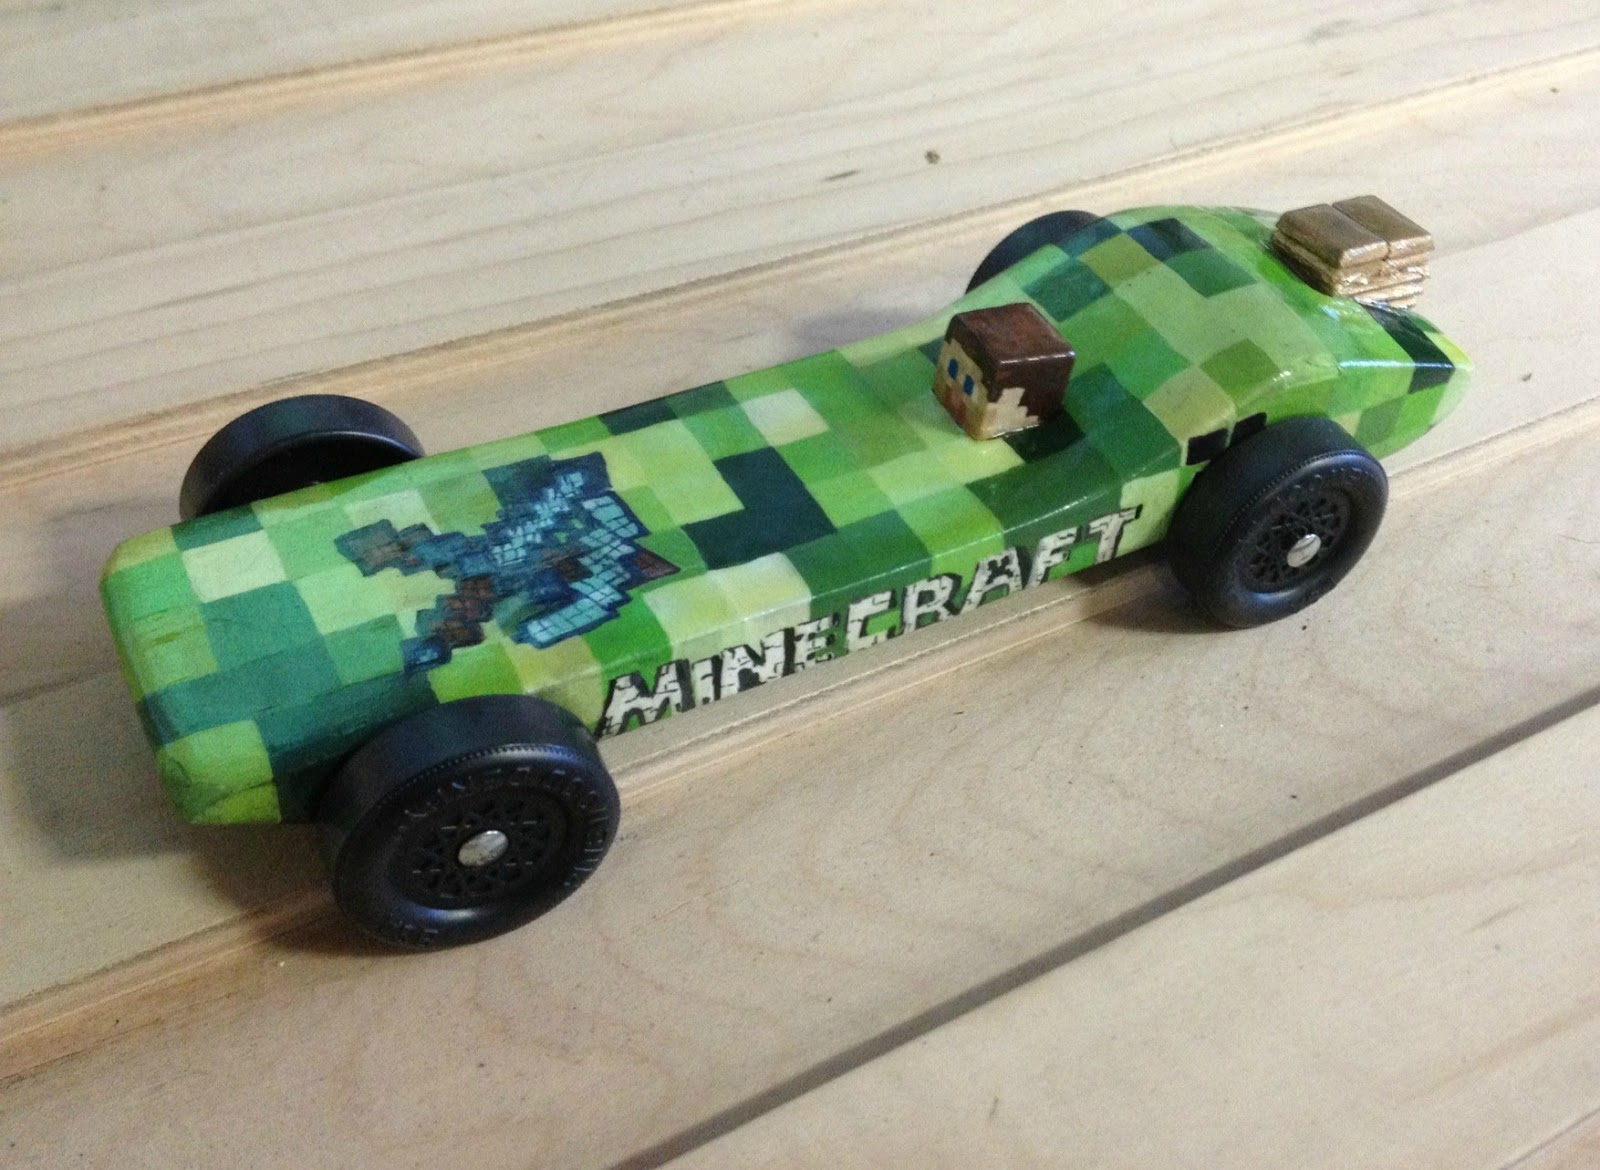 Pinewood derby cars cars wallpaper hd for desktop for Pine wood derby car templates